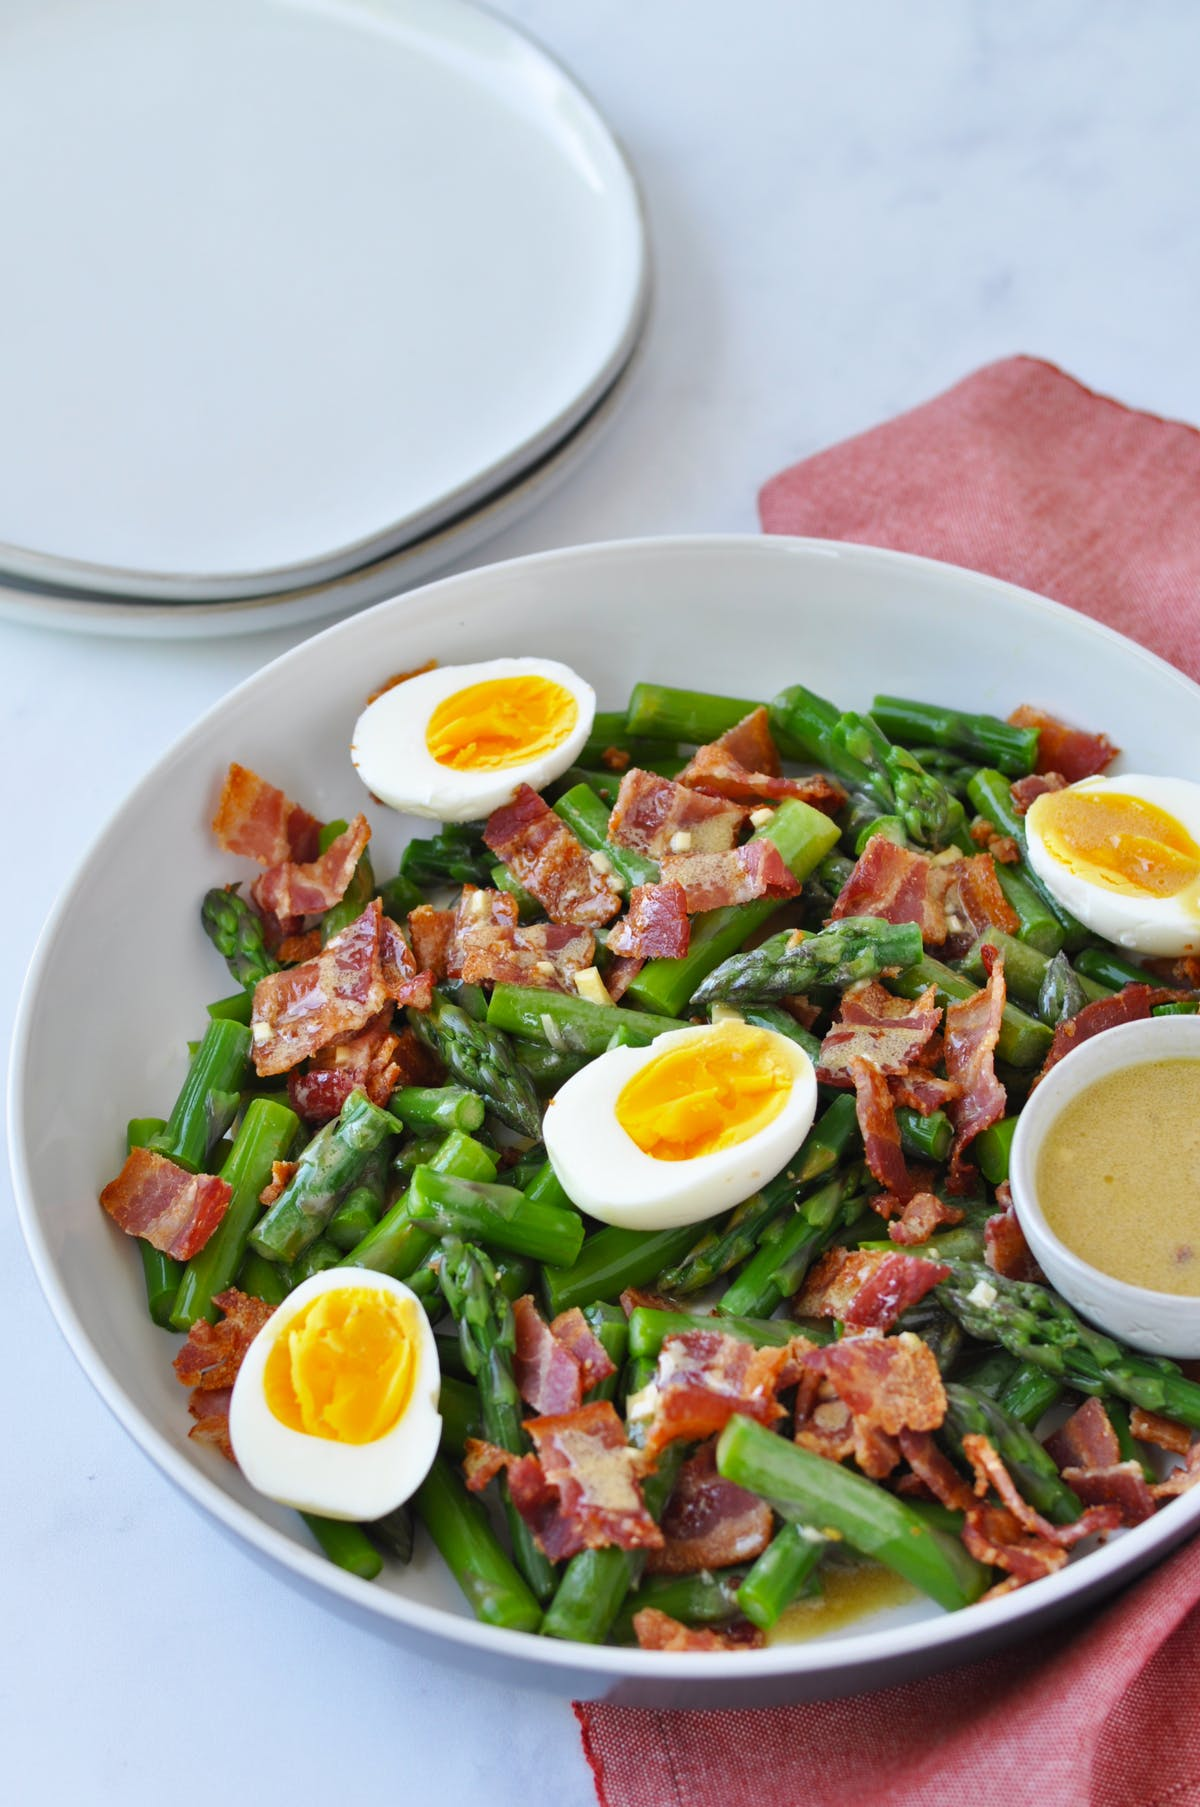 Asparagus, egg and bacon salad